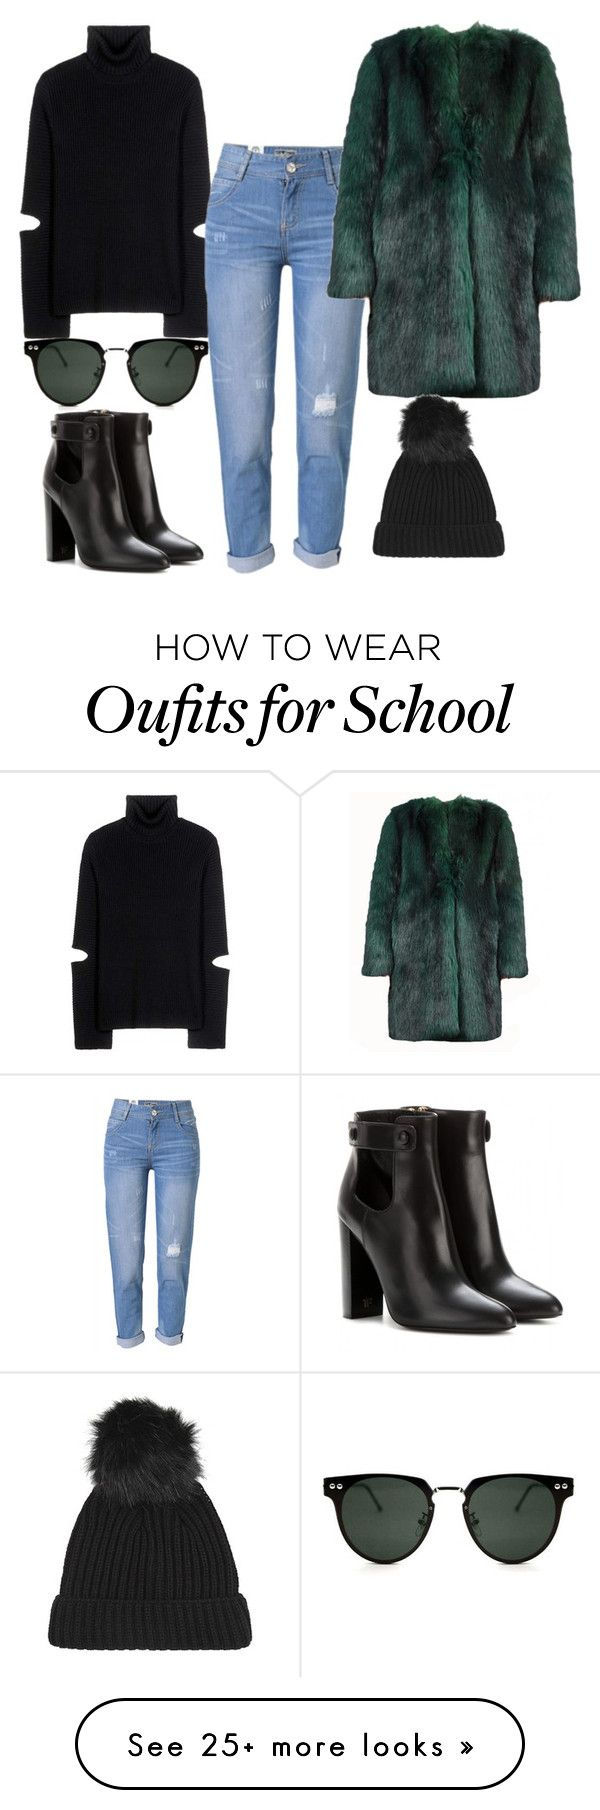 """""""Untitled #1426"""" by dani-gracik on Polyvore featuring Tom Ford, Public School, WithChic, Dries Van Noten, Spitfire and Topshop"""